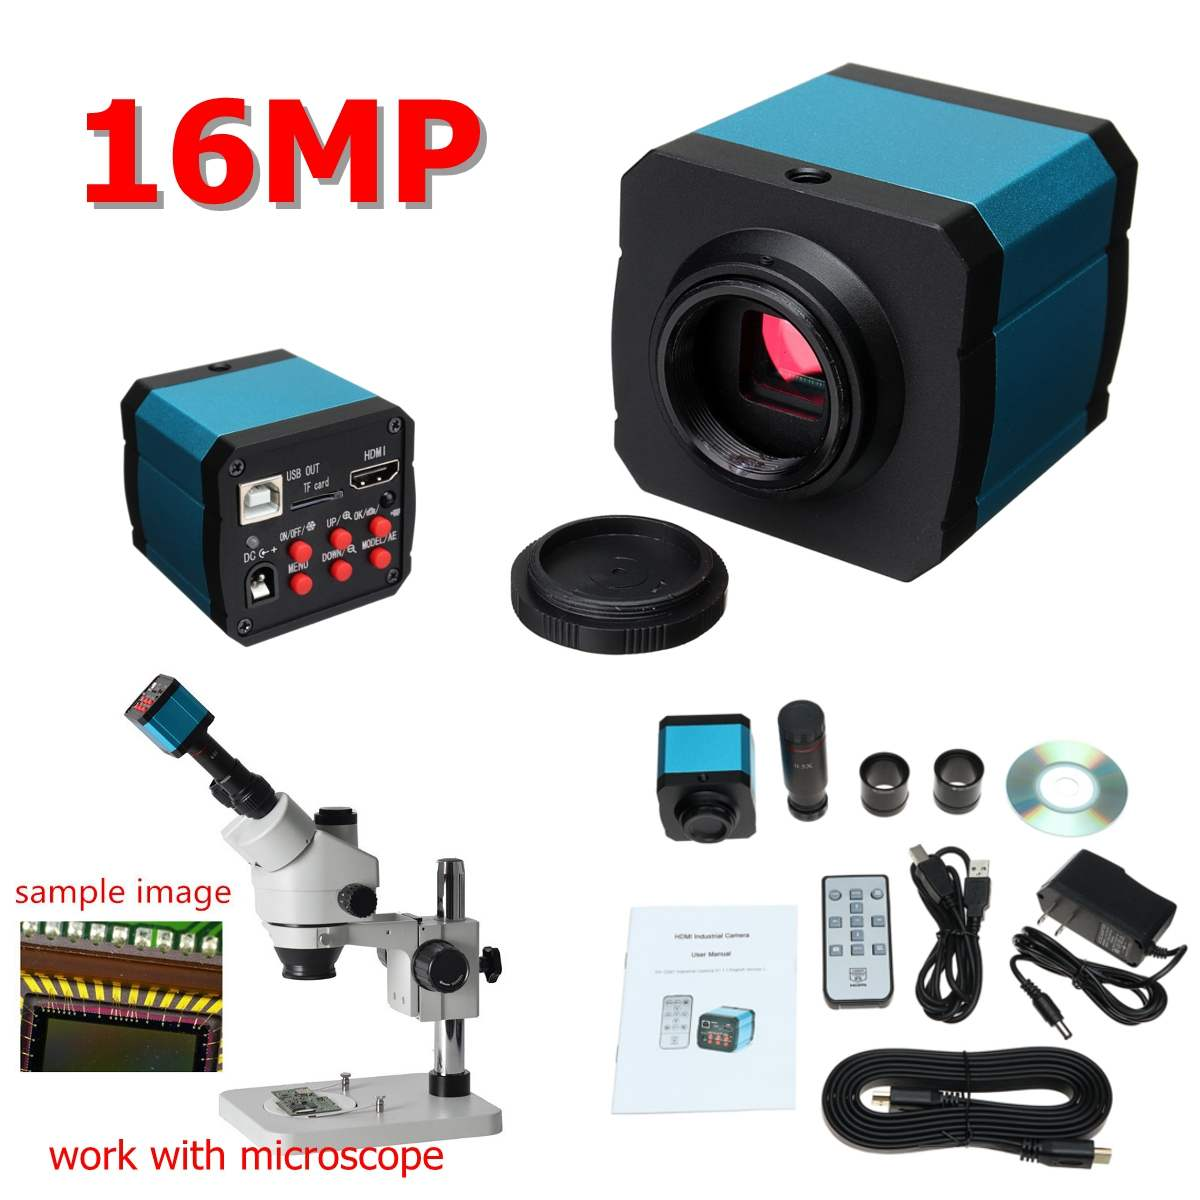 ZEAST 16MP 1080P 60FPS USB C-mount Digital Industry Video Microscope Camera with HDMI Cable